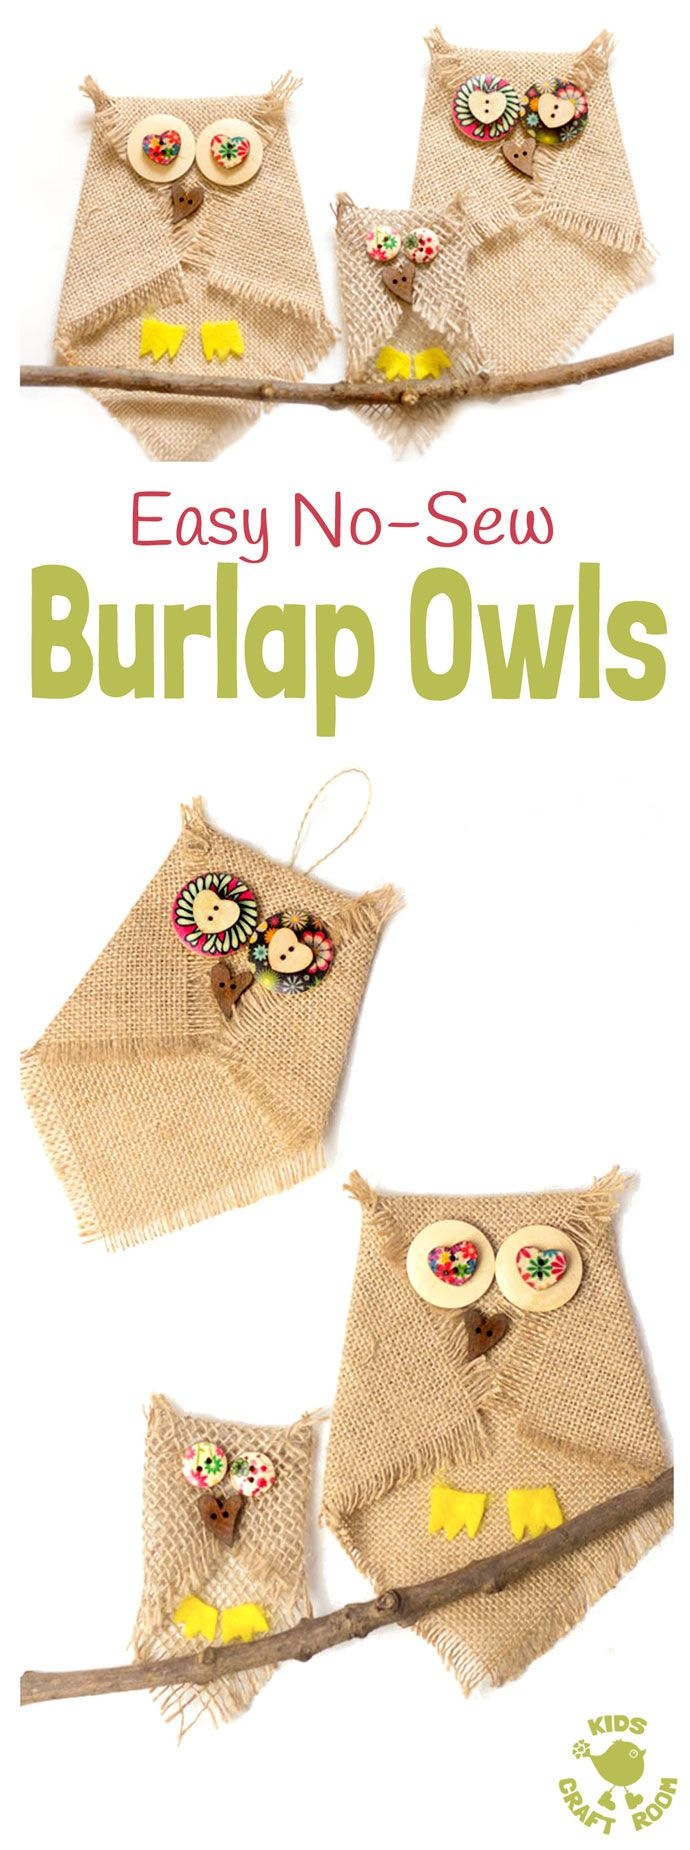 BUTTON AND BURLAP OWL CRAFT - Adorable no-sew craft.